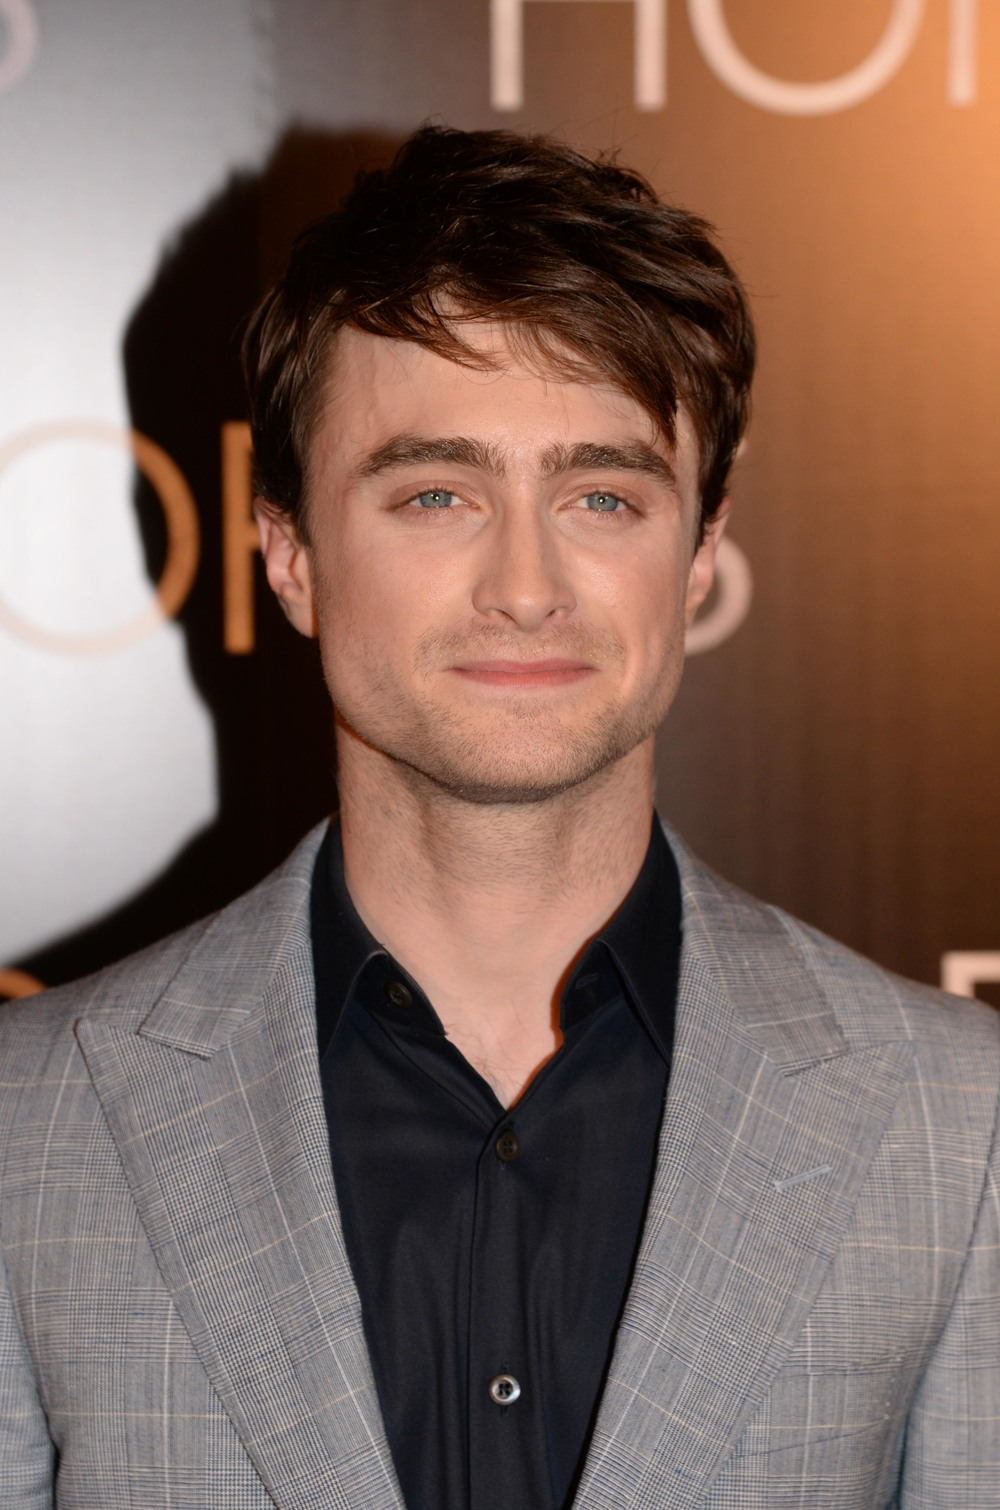 daniel-radcliffe-french-premiere-close-up-photo-red-granite-pictures.jpg